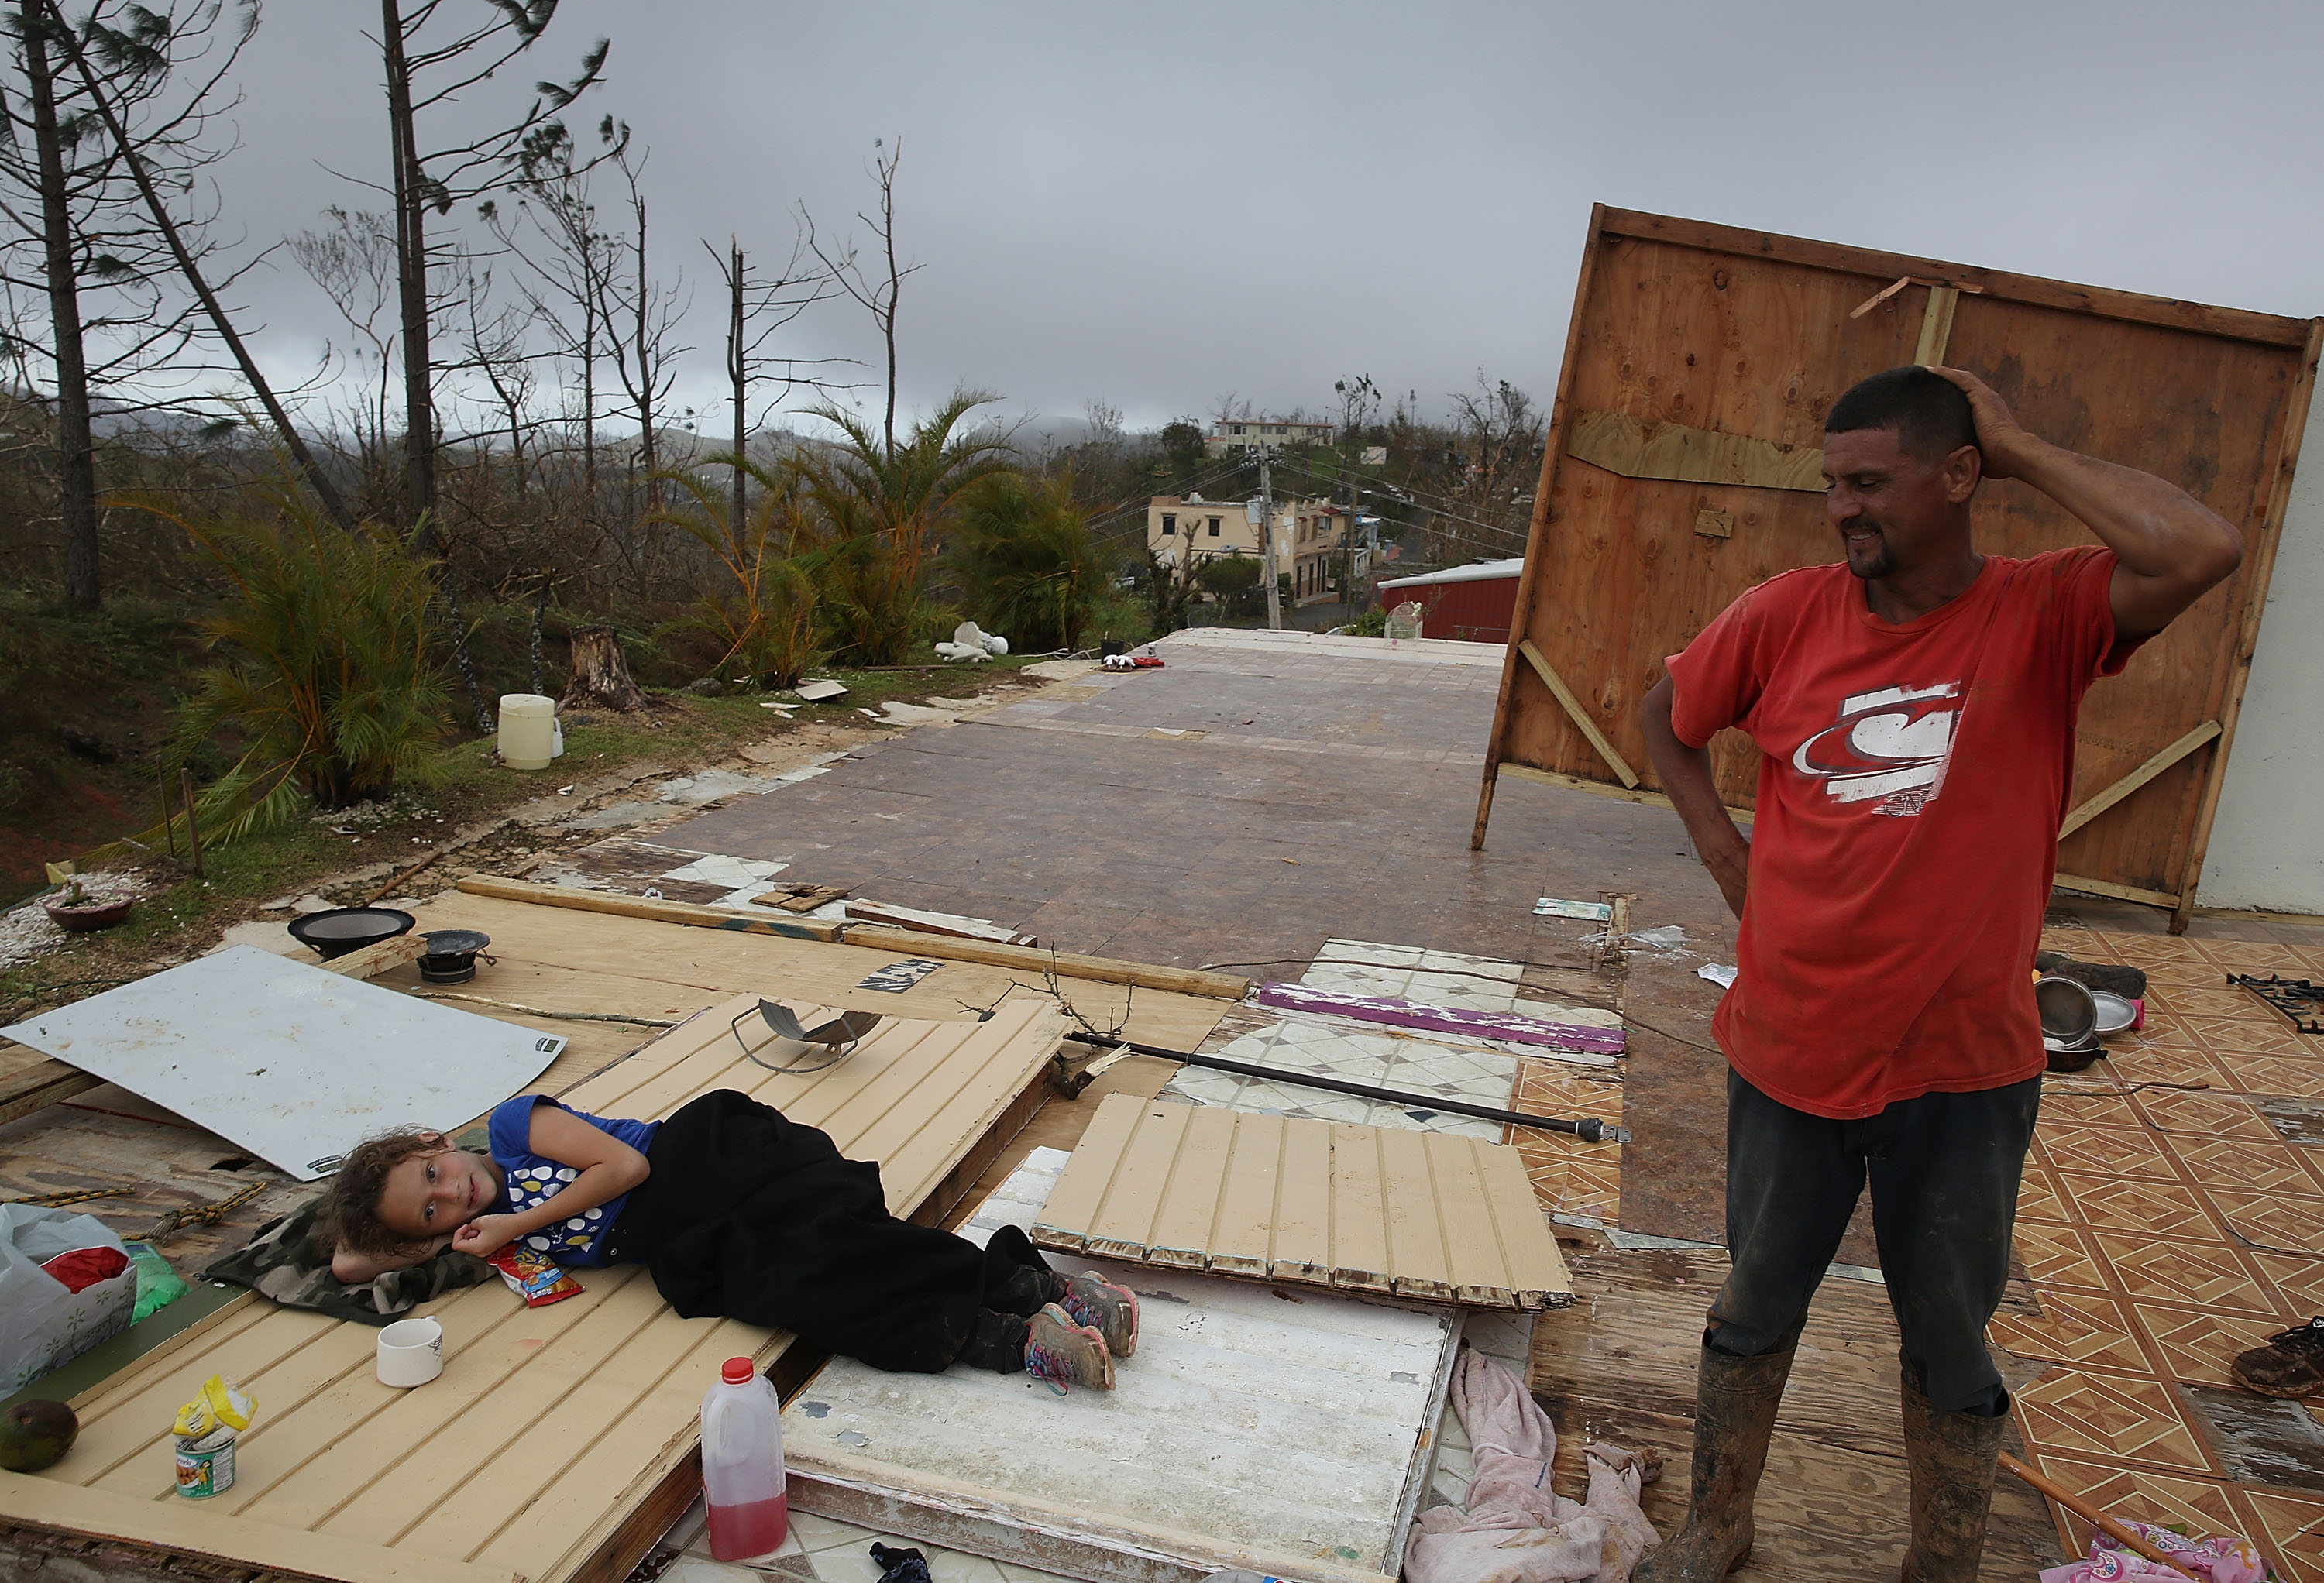 Karlian Mercado,7, and her father Carlos Flores stand on what remains of their home September 24, 2017 in Hayales de Coamo, Puerto Rico.